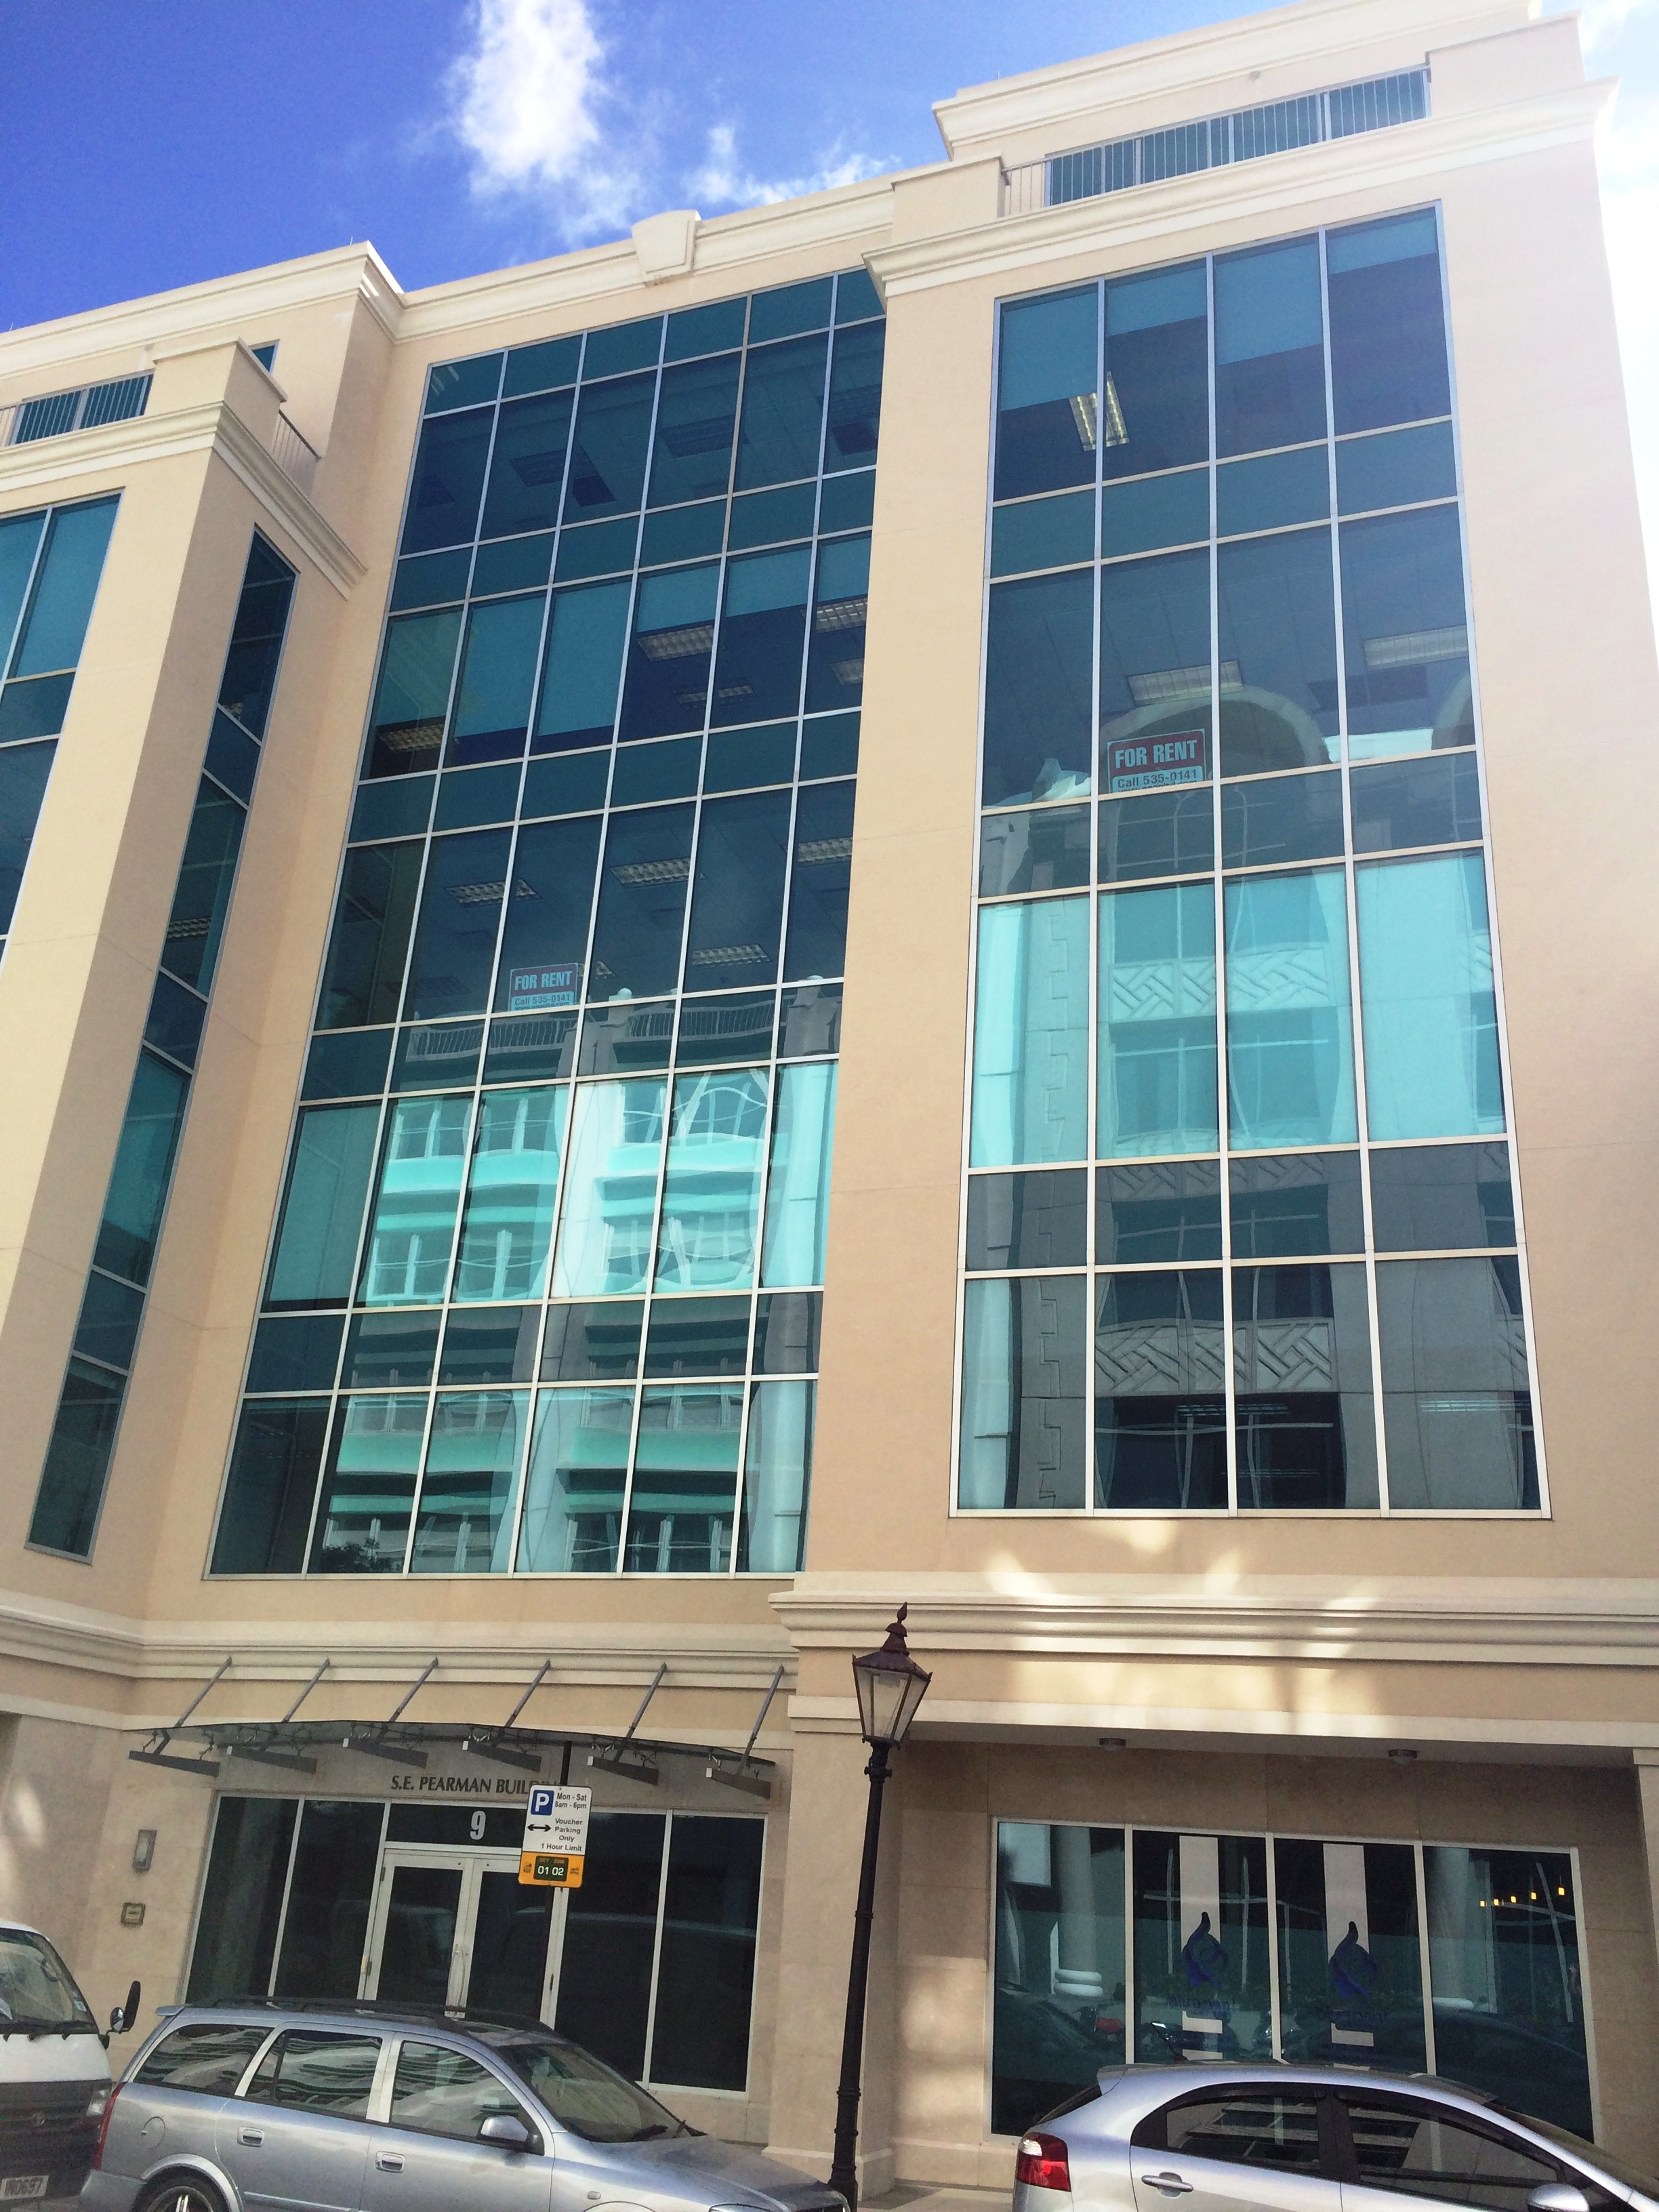 Commercial for Rent at SE Pearman Building 2nd Floor Hamilton, Bermuda